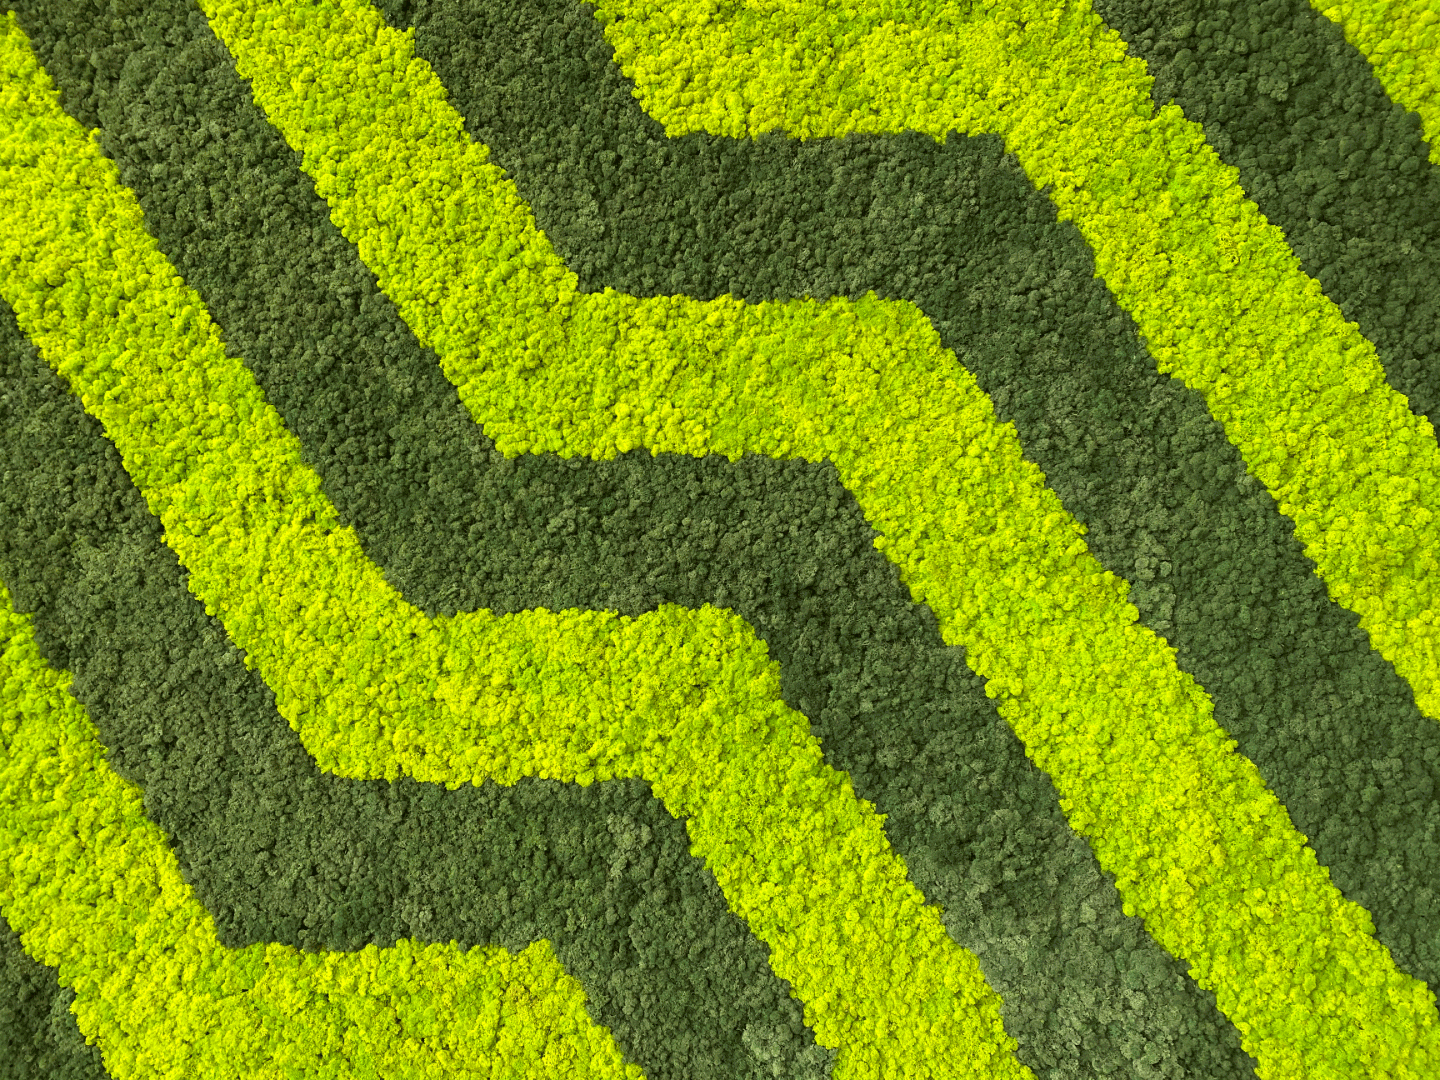 Geometric Moss Wall Art Design